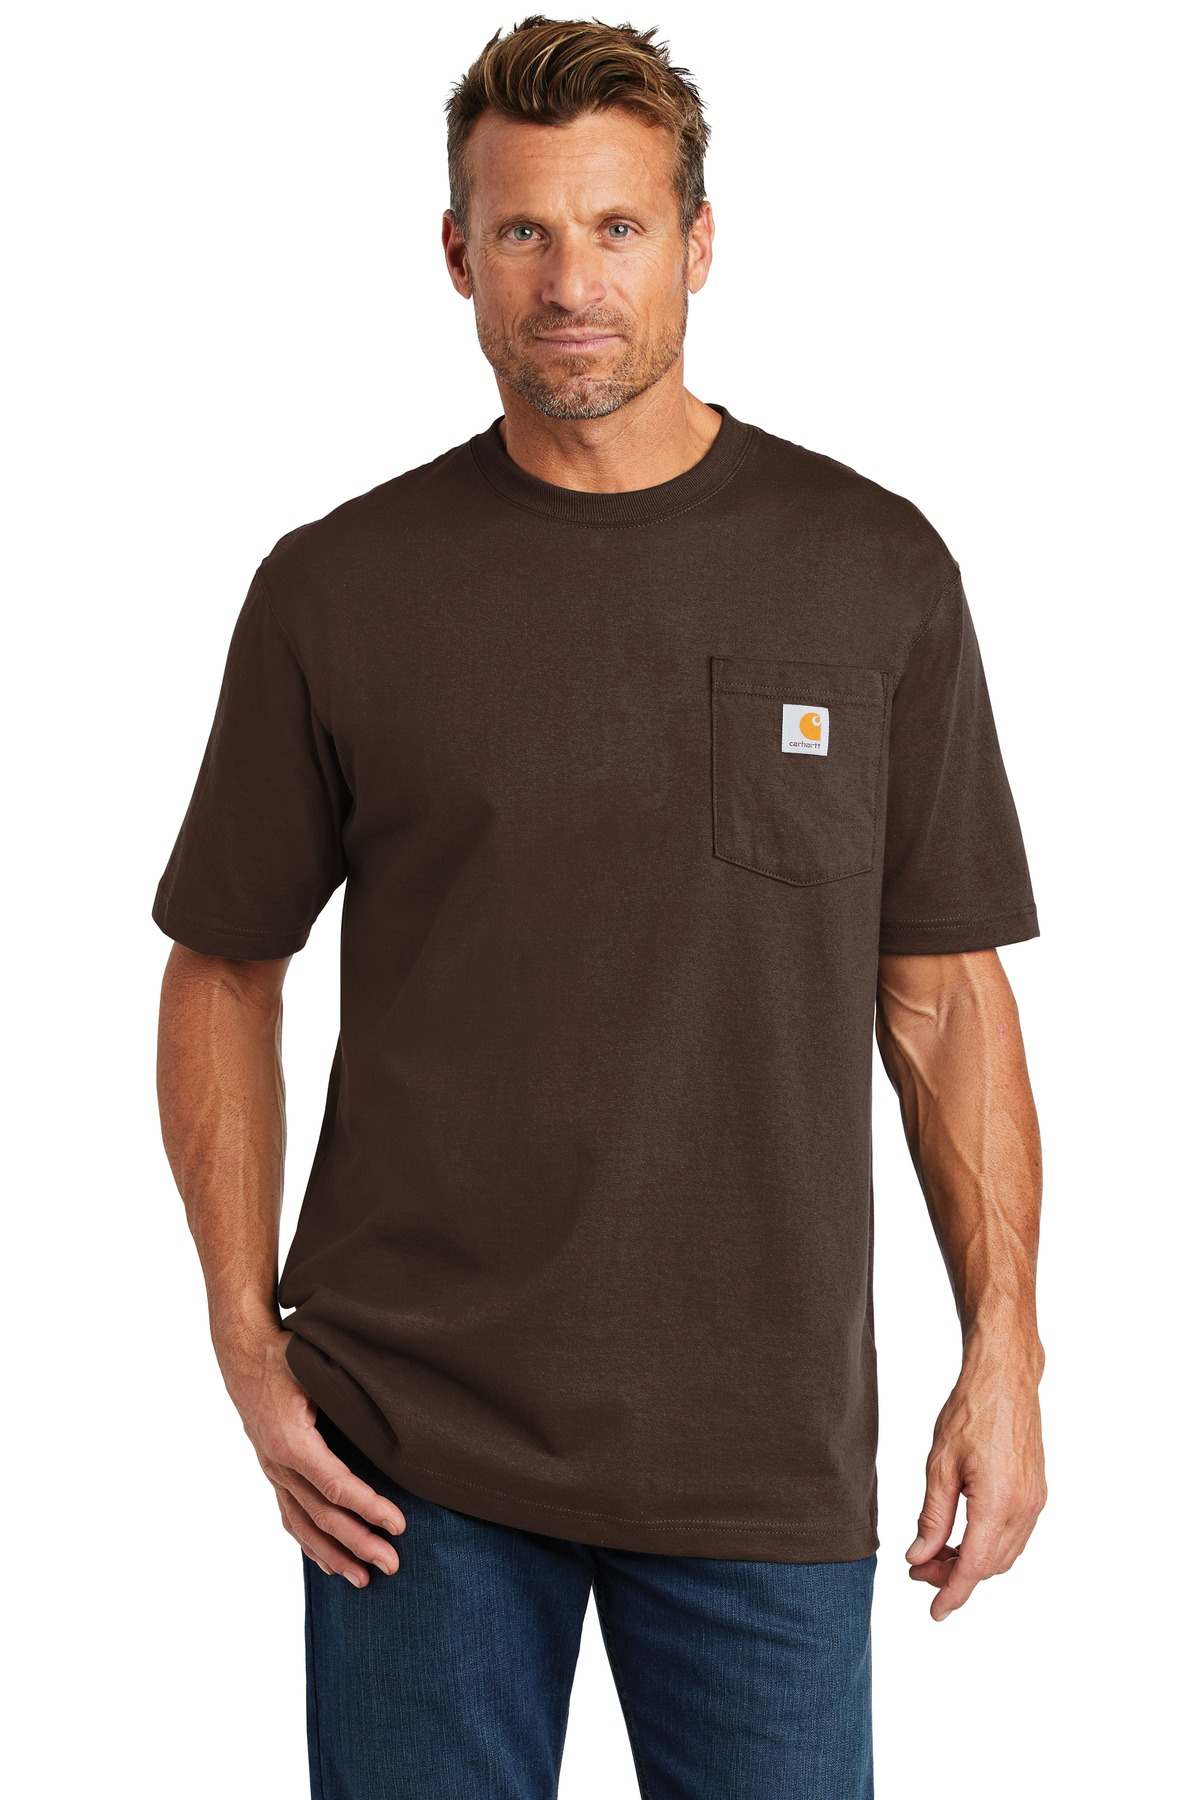 Carhartt  ®  Tall Workwear Pocket Short Sleeve T-Shirt. CTTK87 - Dark Brown